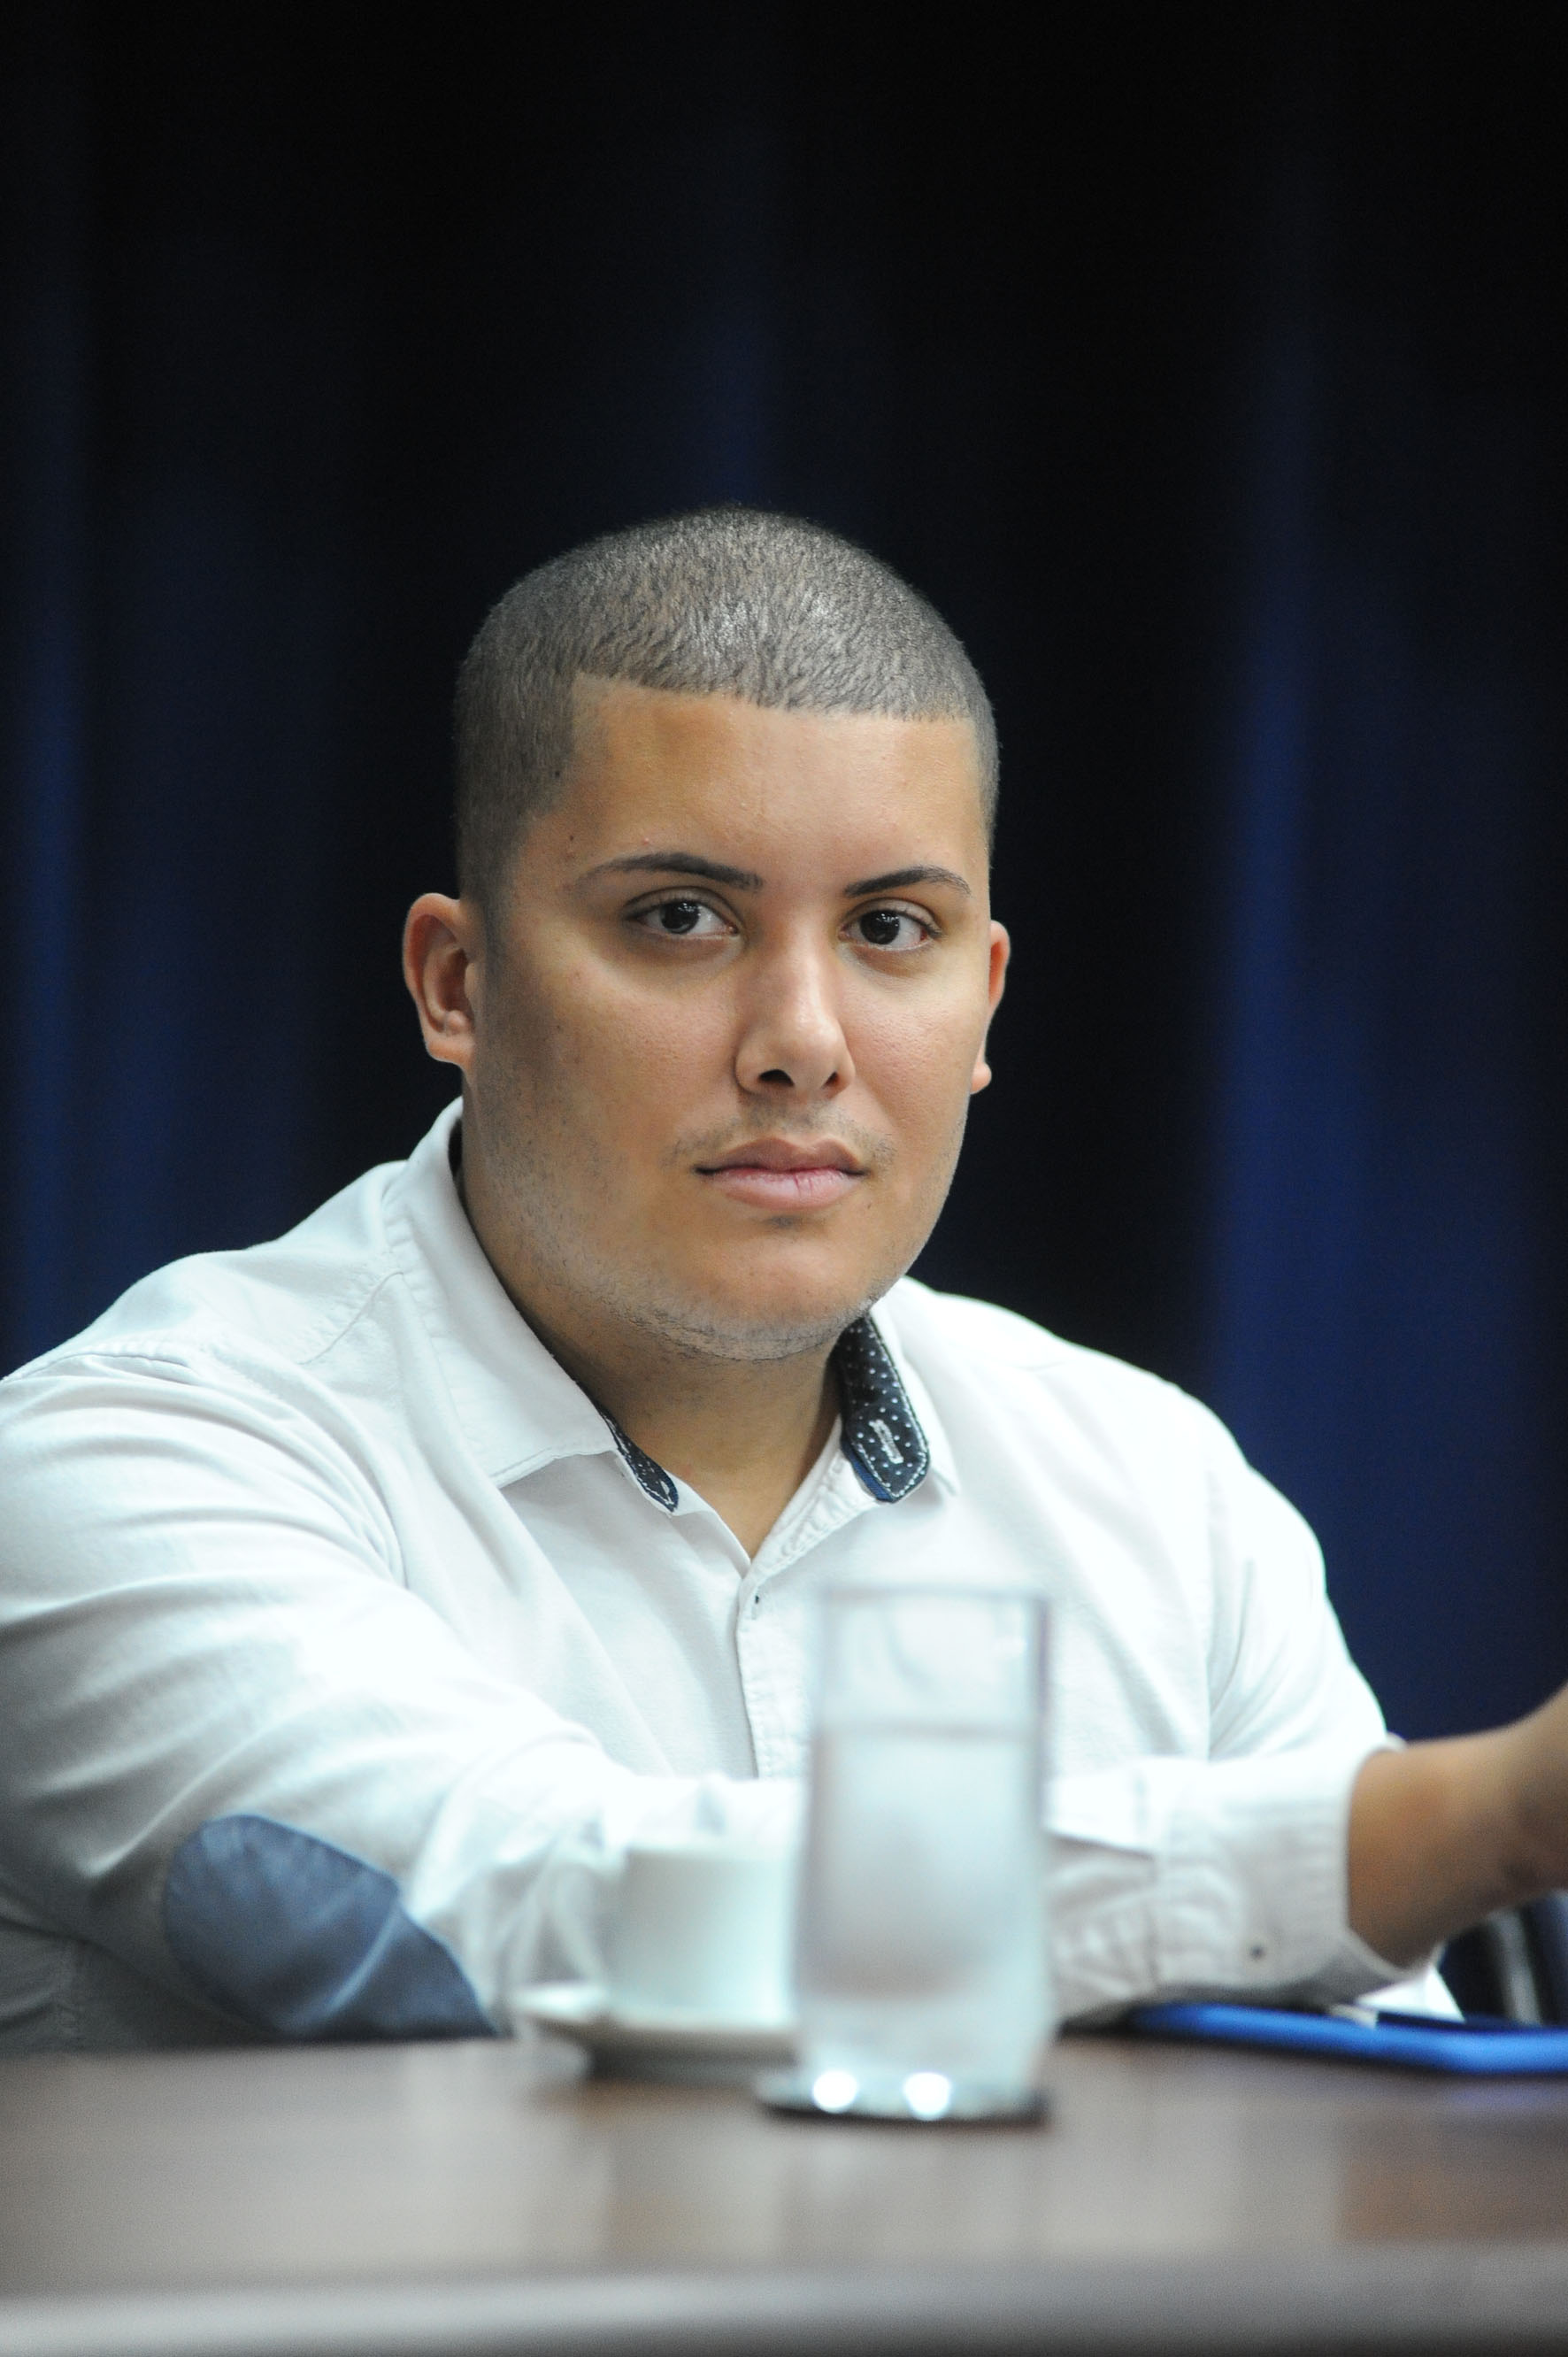 Marcos Vinicius<a style='float:right' href='https://www3.al.sp.gov.br/repositorio/noticia/N-04-2018/fg220104.jpg' target=_blank><img src='/_img/material-file-download-white.png' width='14px' alt='Clique para baixar a imagem'></a>